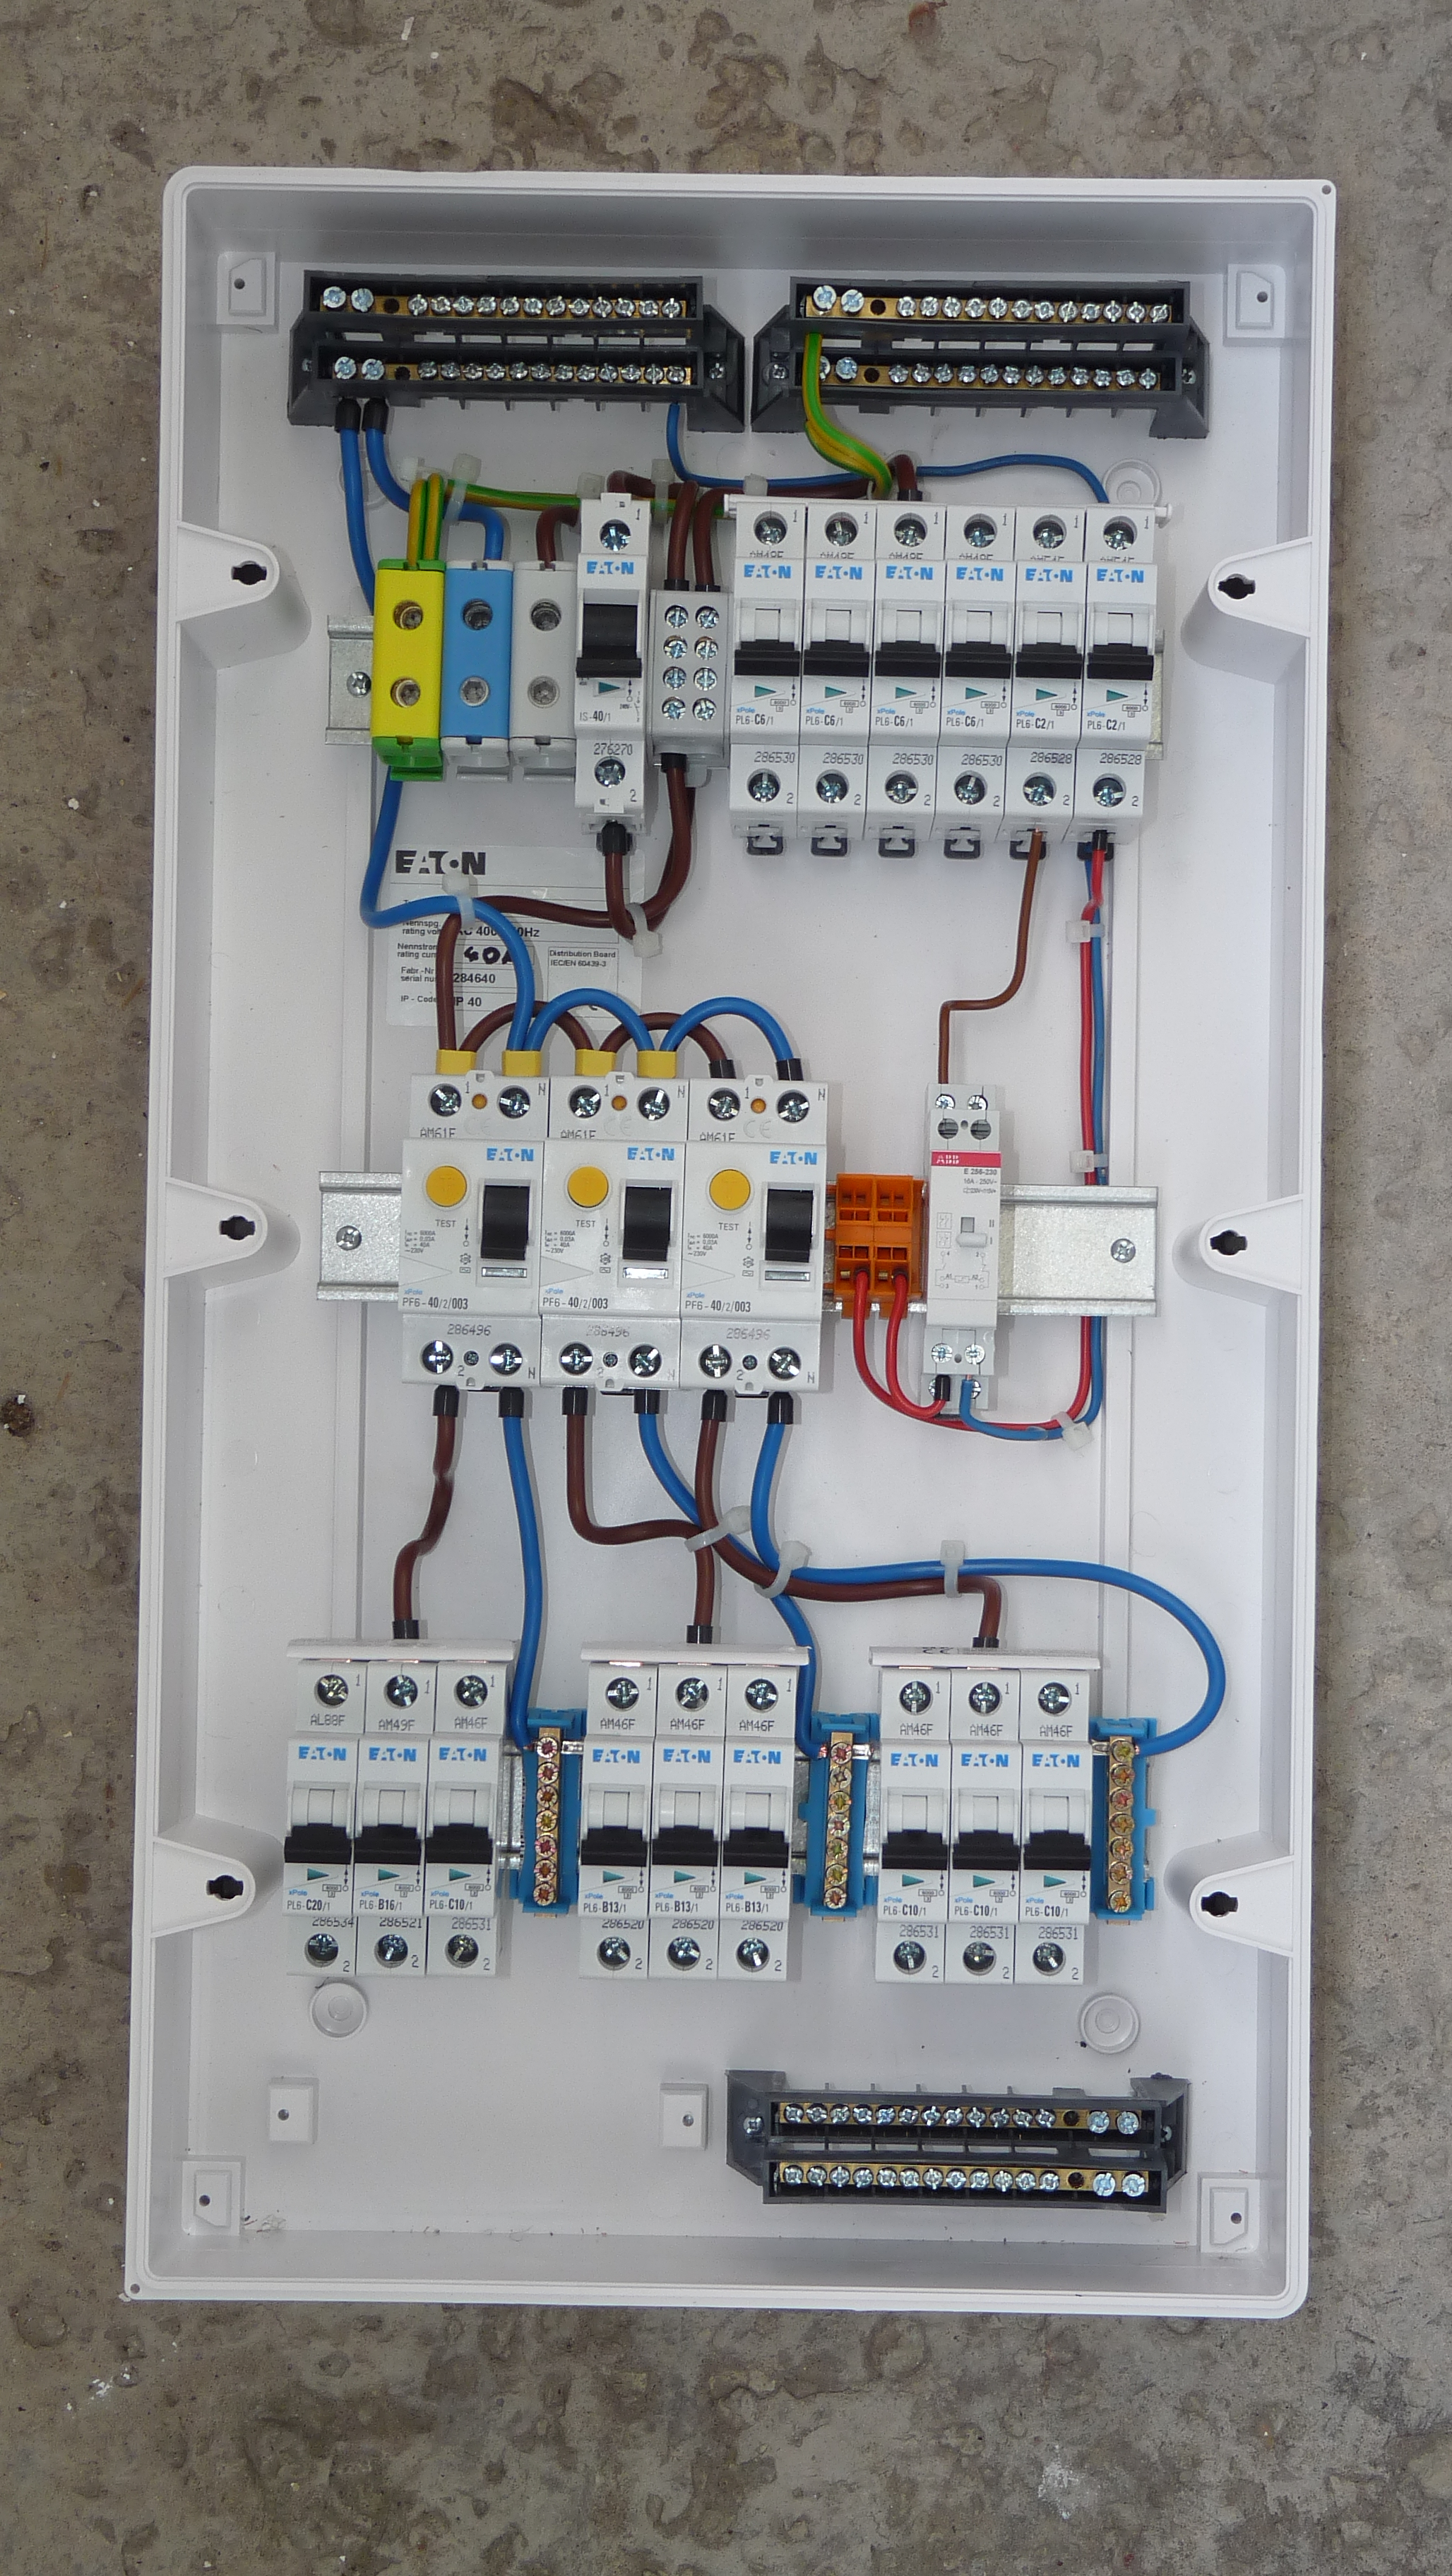 A Cc Ac B B A E C C Cdca Electrical Projects Electrical Wiring as well Paekaare Fuse Box likewise Dscn Meter moreover Post moreover Atx Power. on 50 amp service wiring diagram